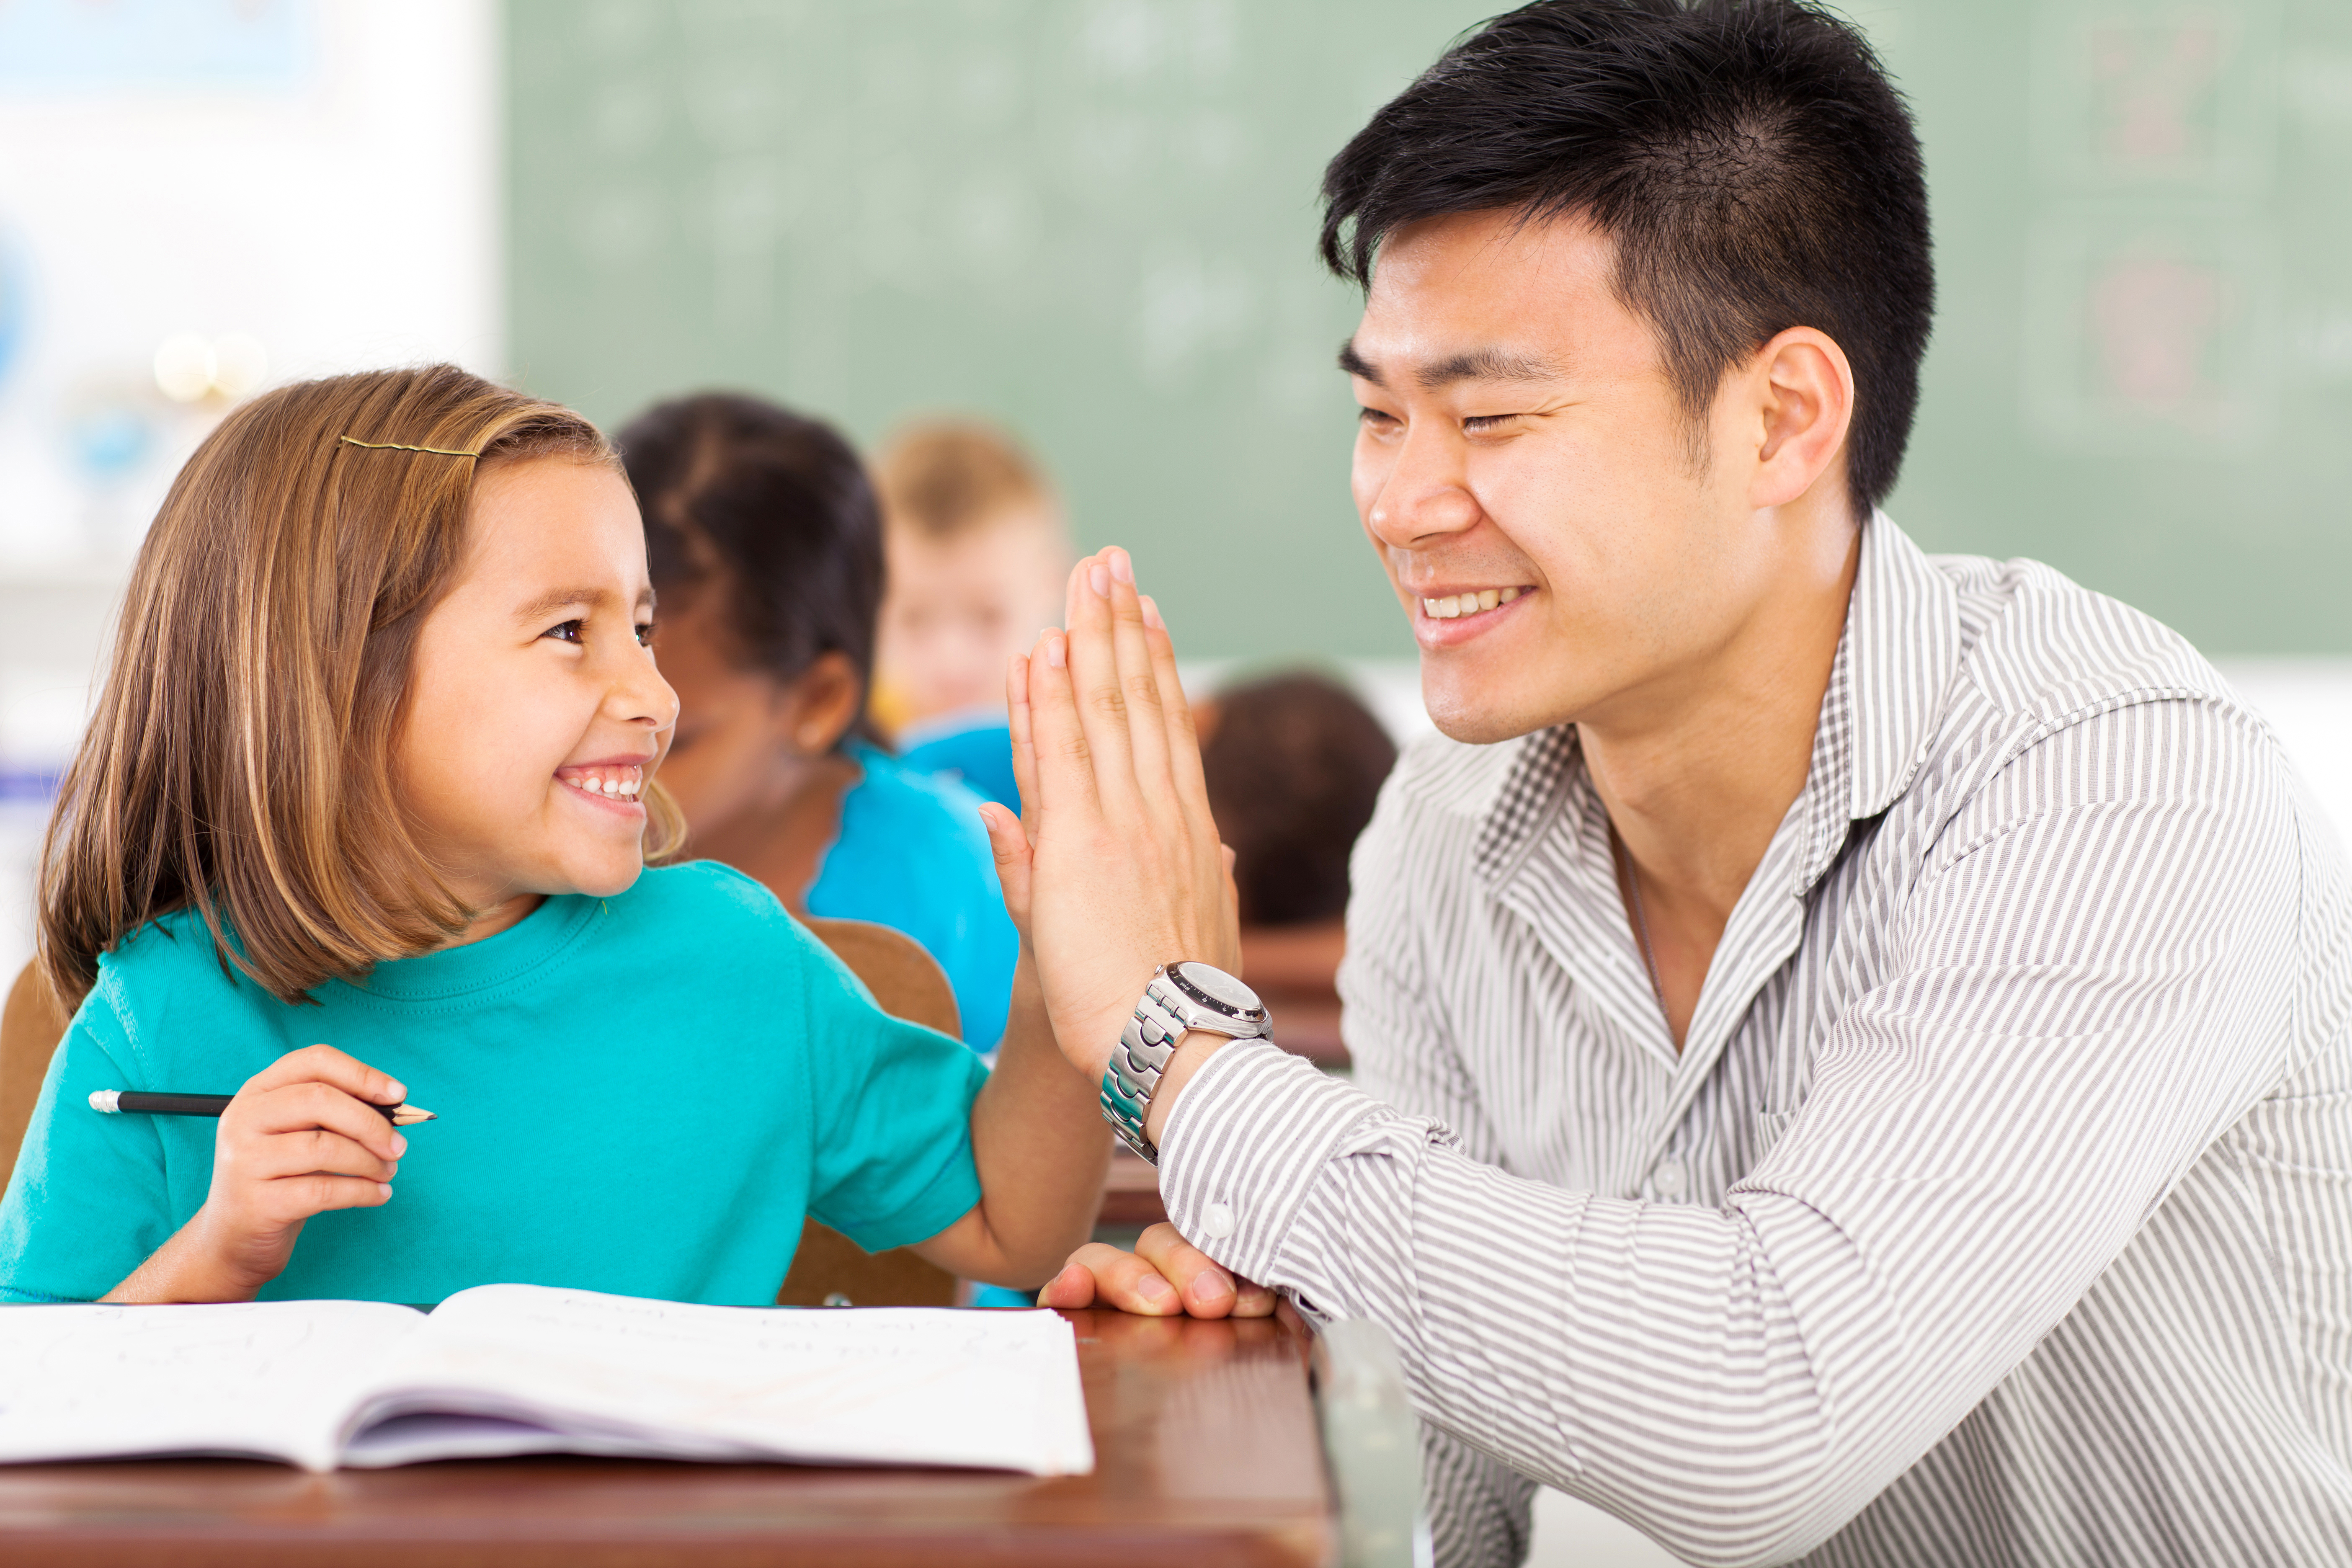 cheerful elementary school teacher and student high five in classroom